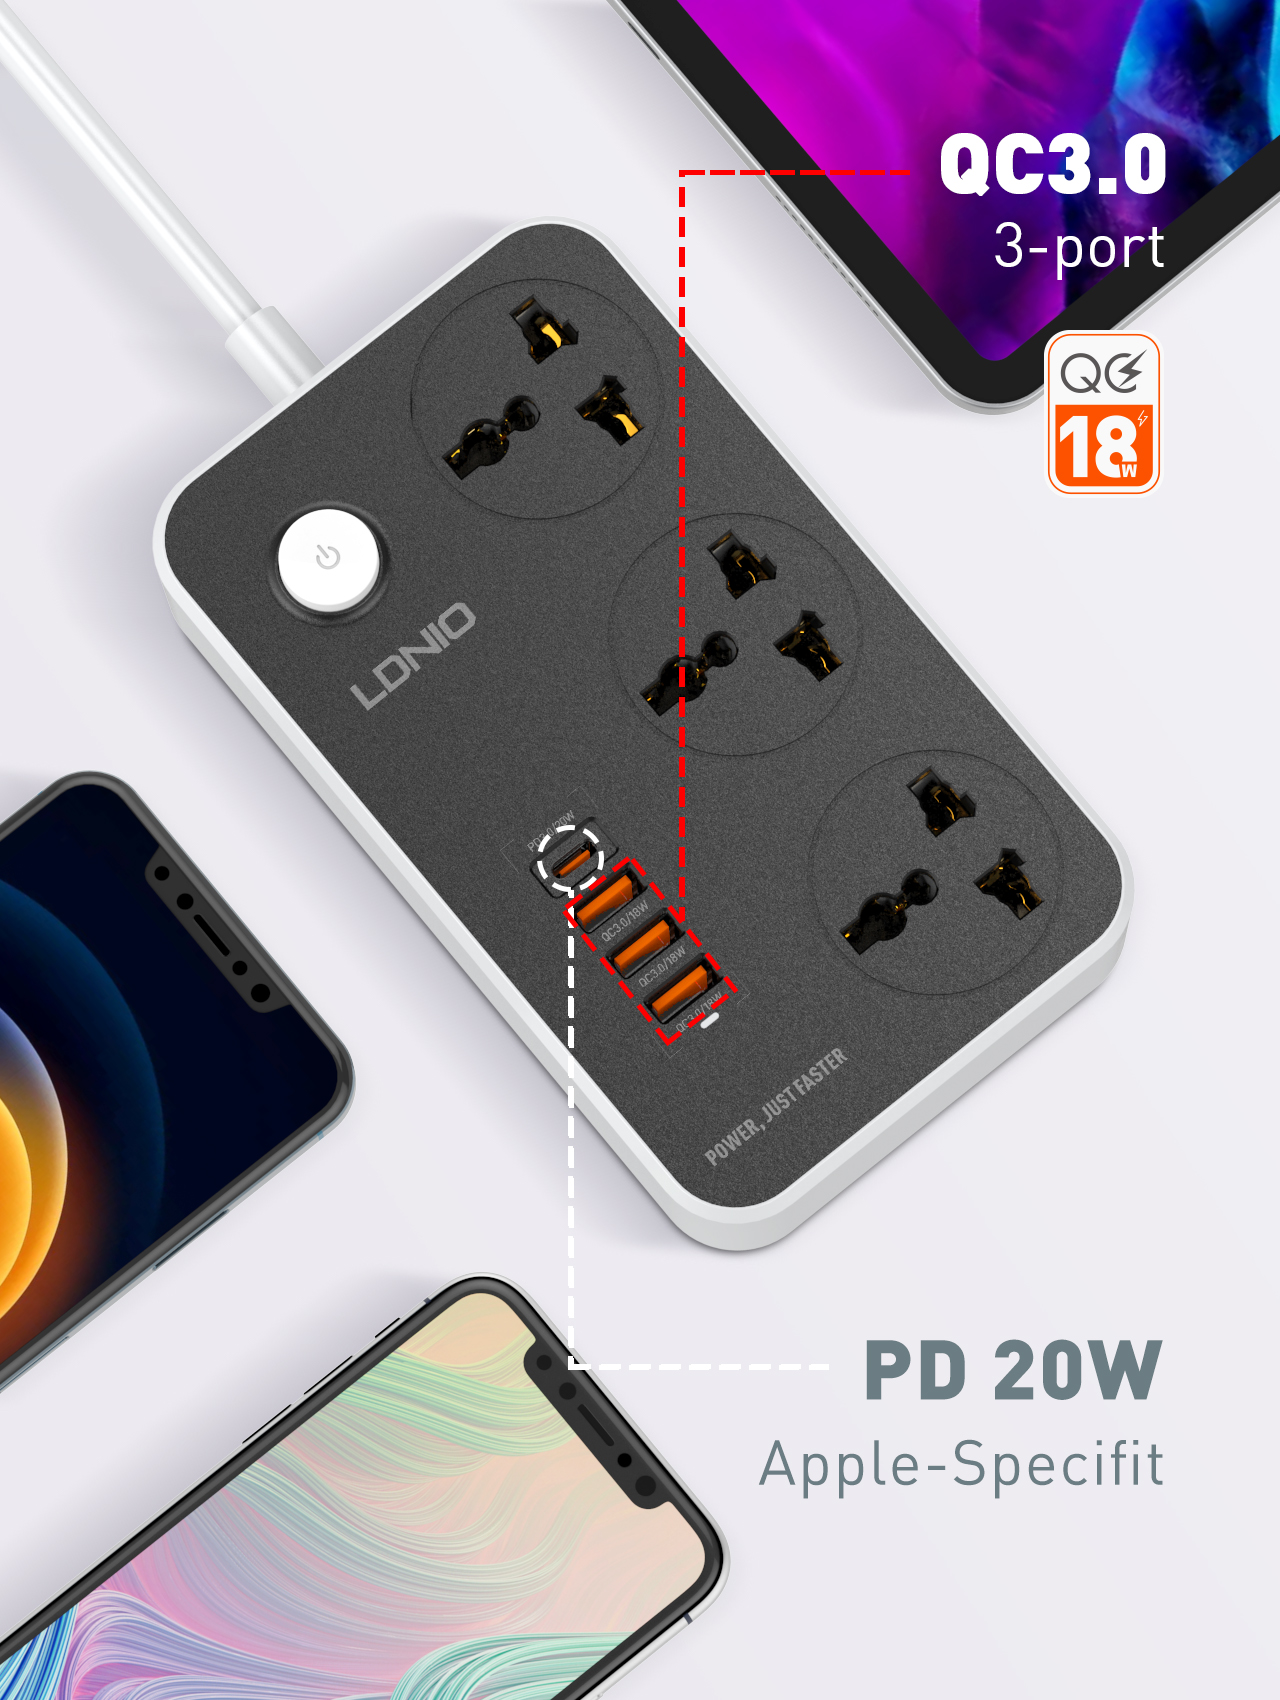 LDNIO 20W PD USB Charger Extension Cord AC Outlet Switch Plug Socket Universal Power Strip